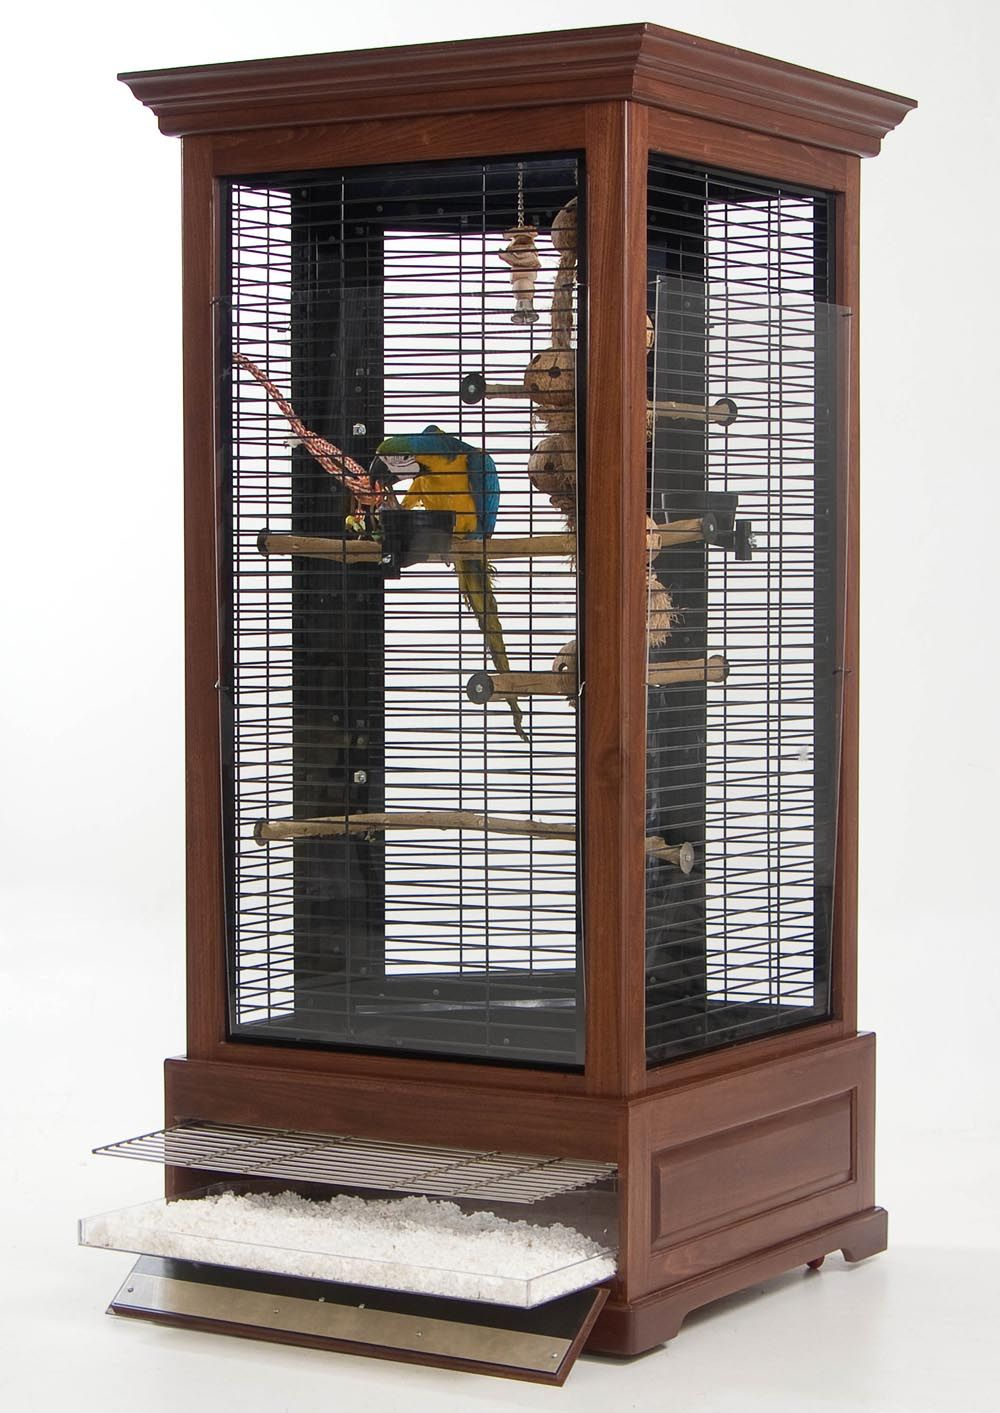 My Kinda Bird Cage For Parrots That Is Anyways. More Like A Furniture Style  Then